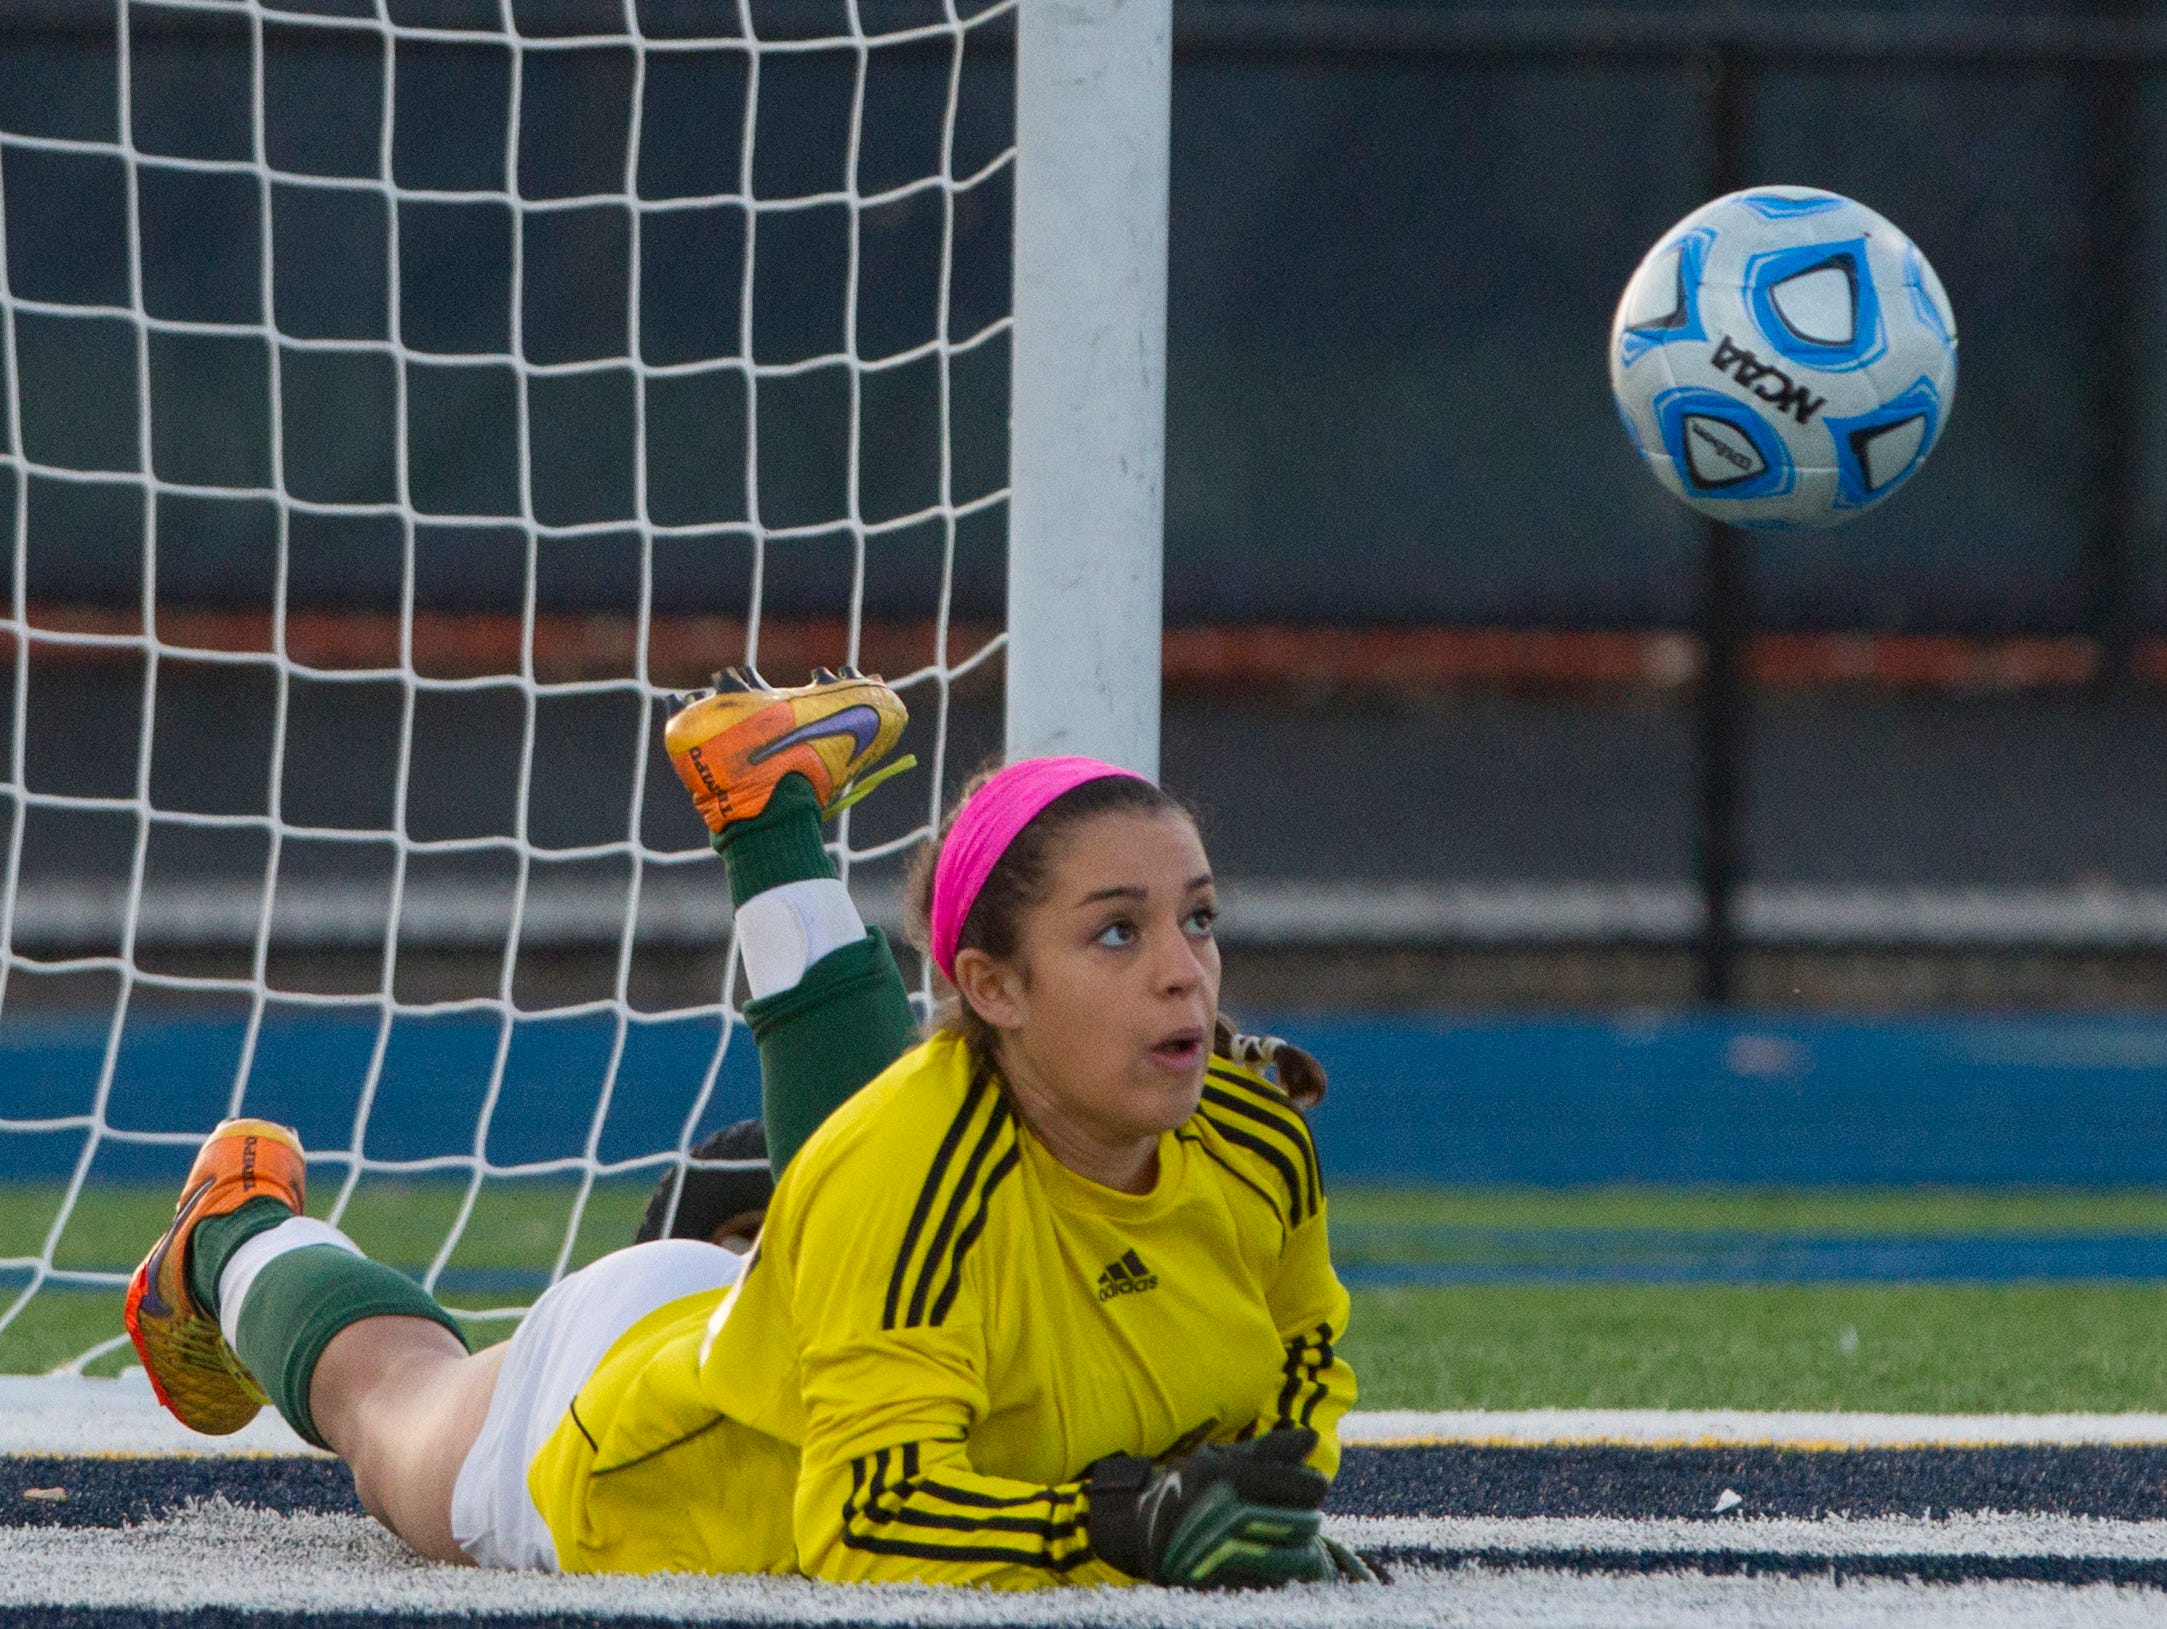 Colts Neck goalie Lauren Feaster looks up at shot on goal during closing moments of game that she blocked and got kicked away by a teammate. Colt Necks Girls Soccer vs Northern Highlands in NJSIAA State Group III Championship at Kean University on November 21, 2015 in Union, NJ.